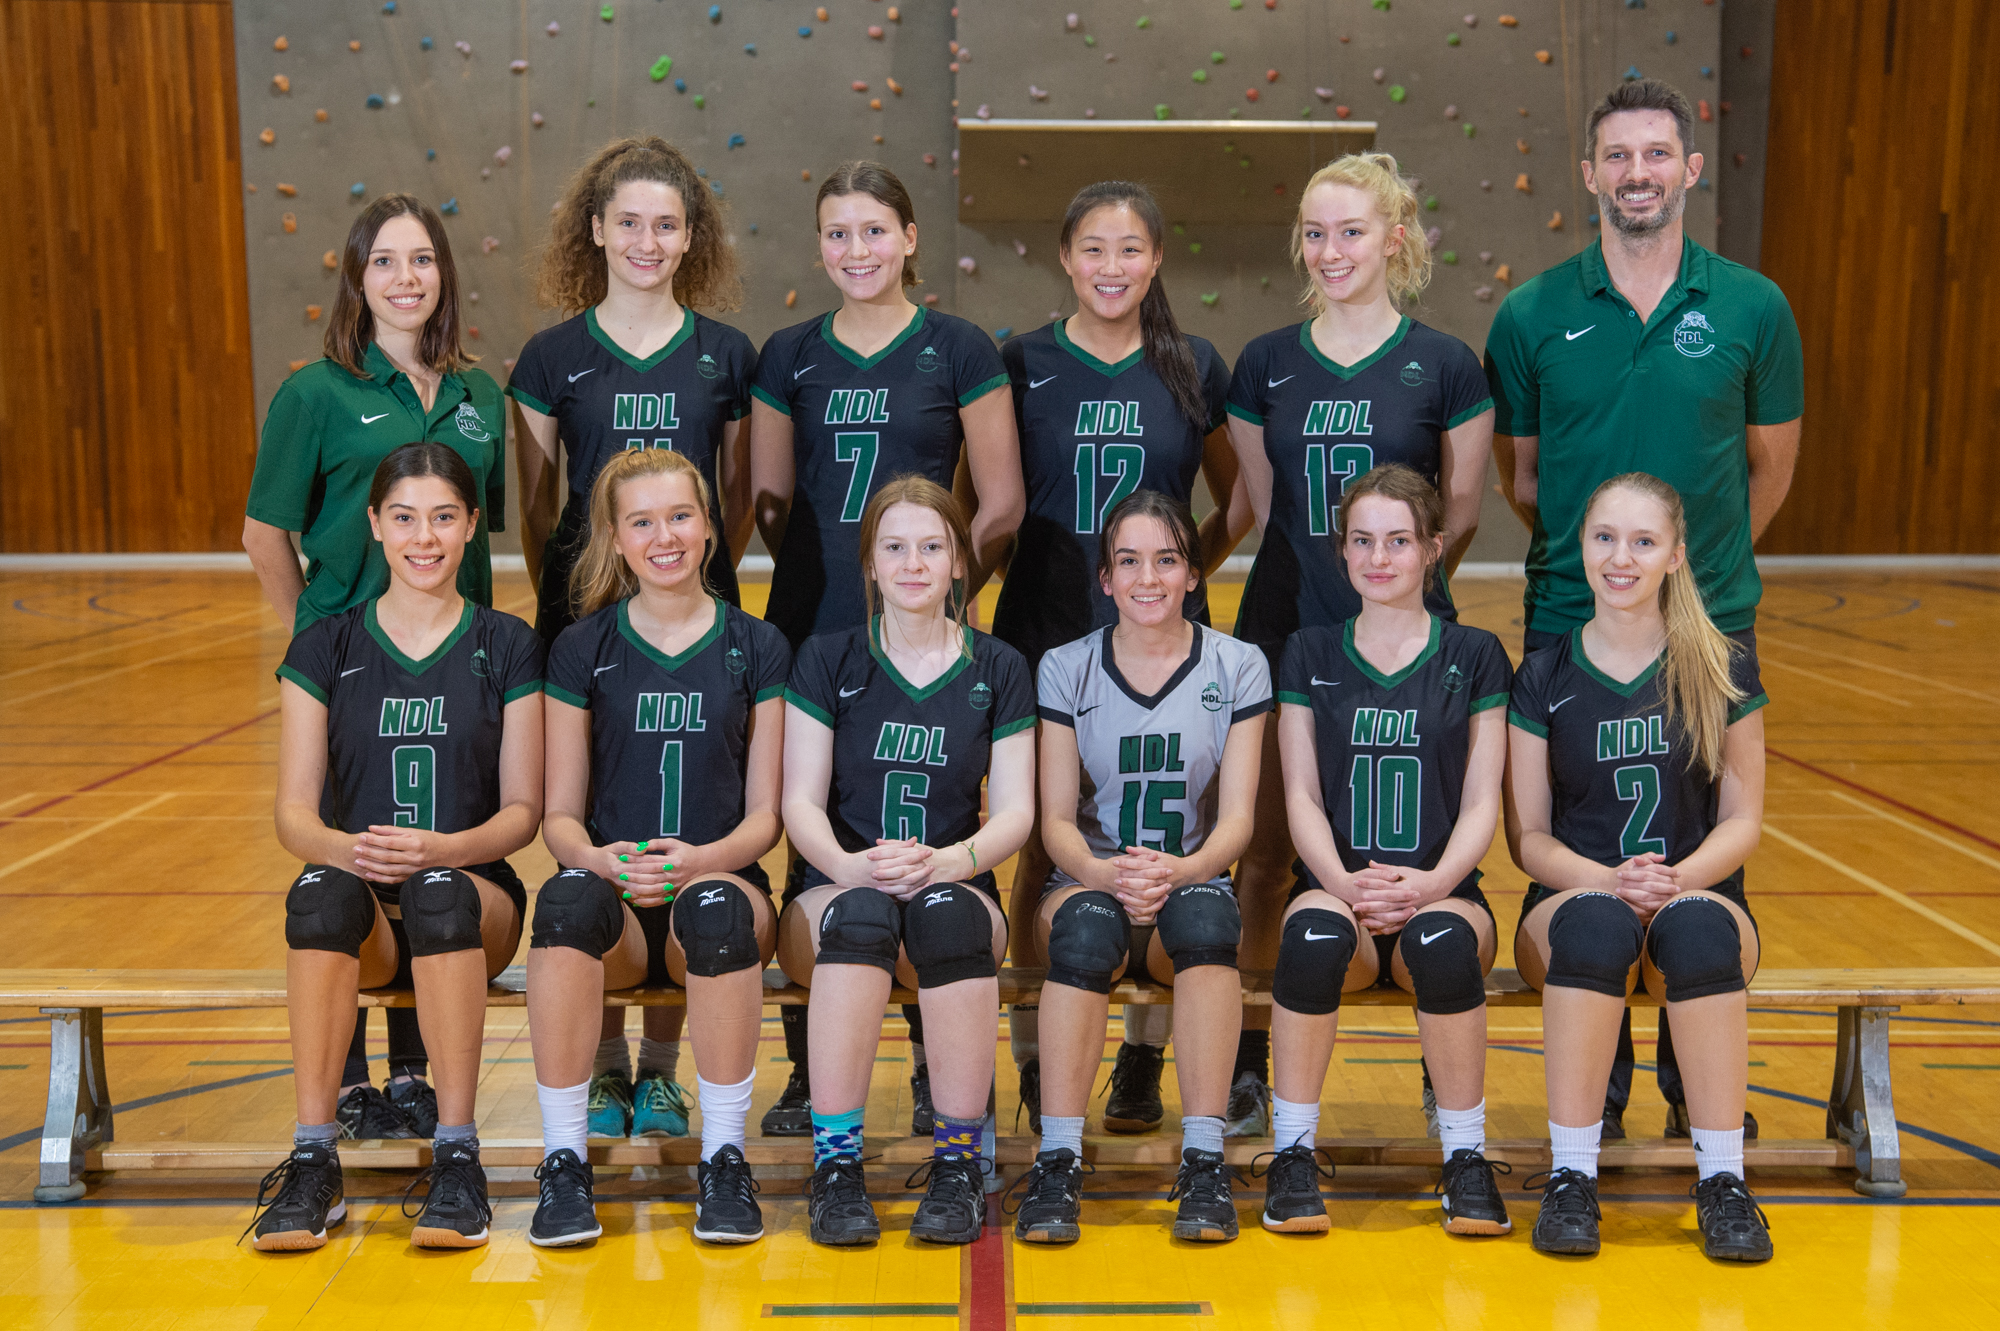 NDL_Preds 2019-2020 Volleyball JFD4